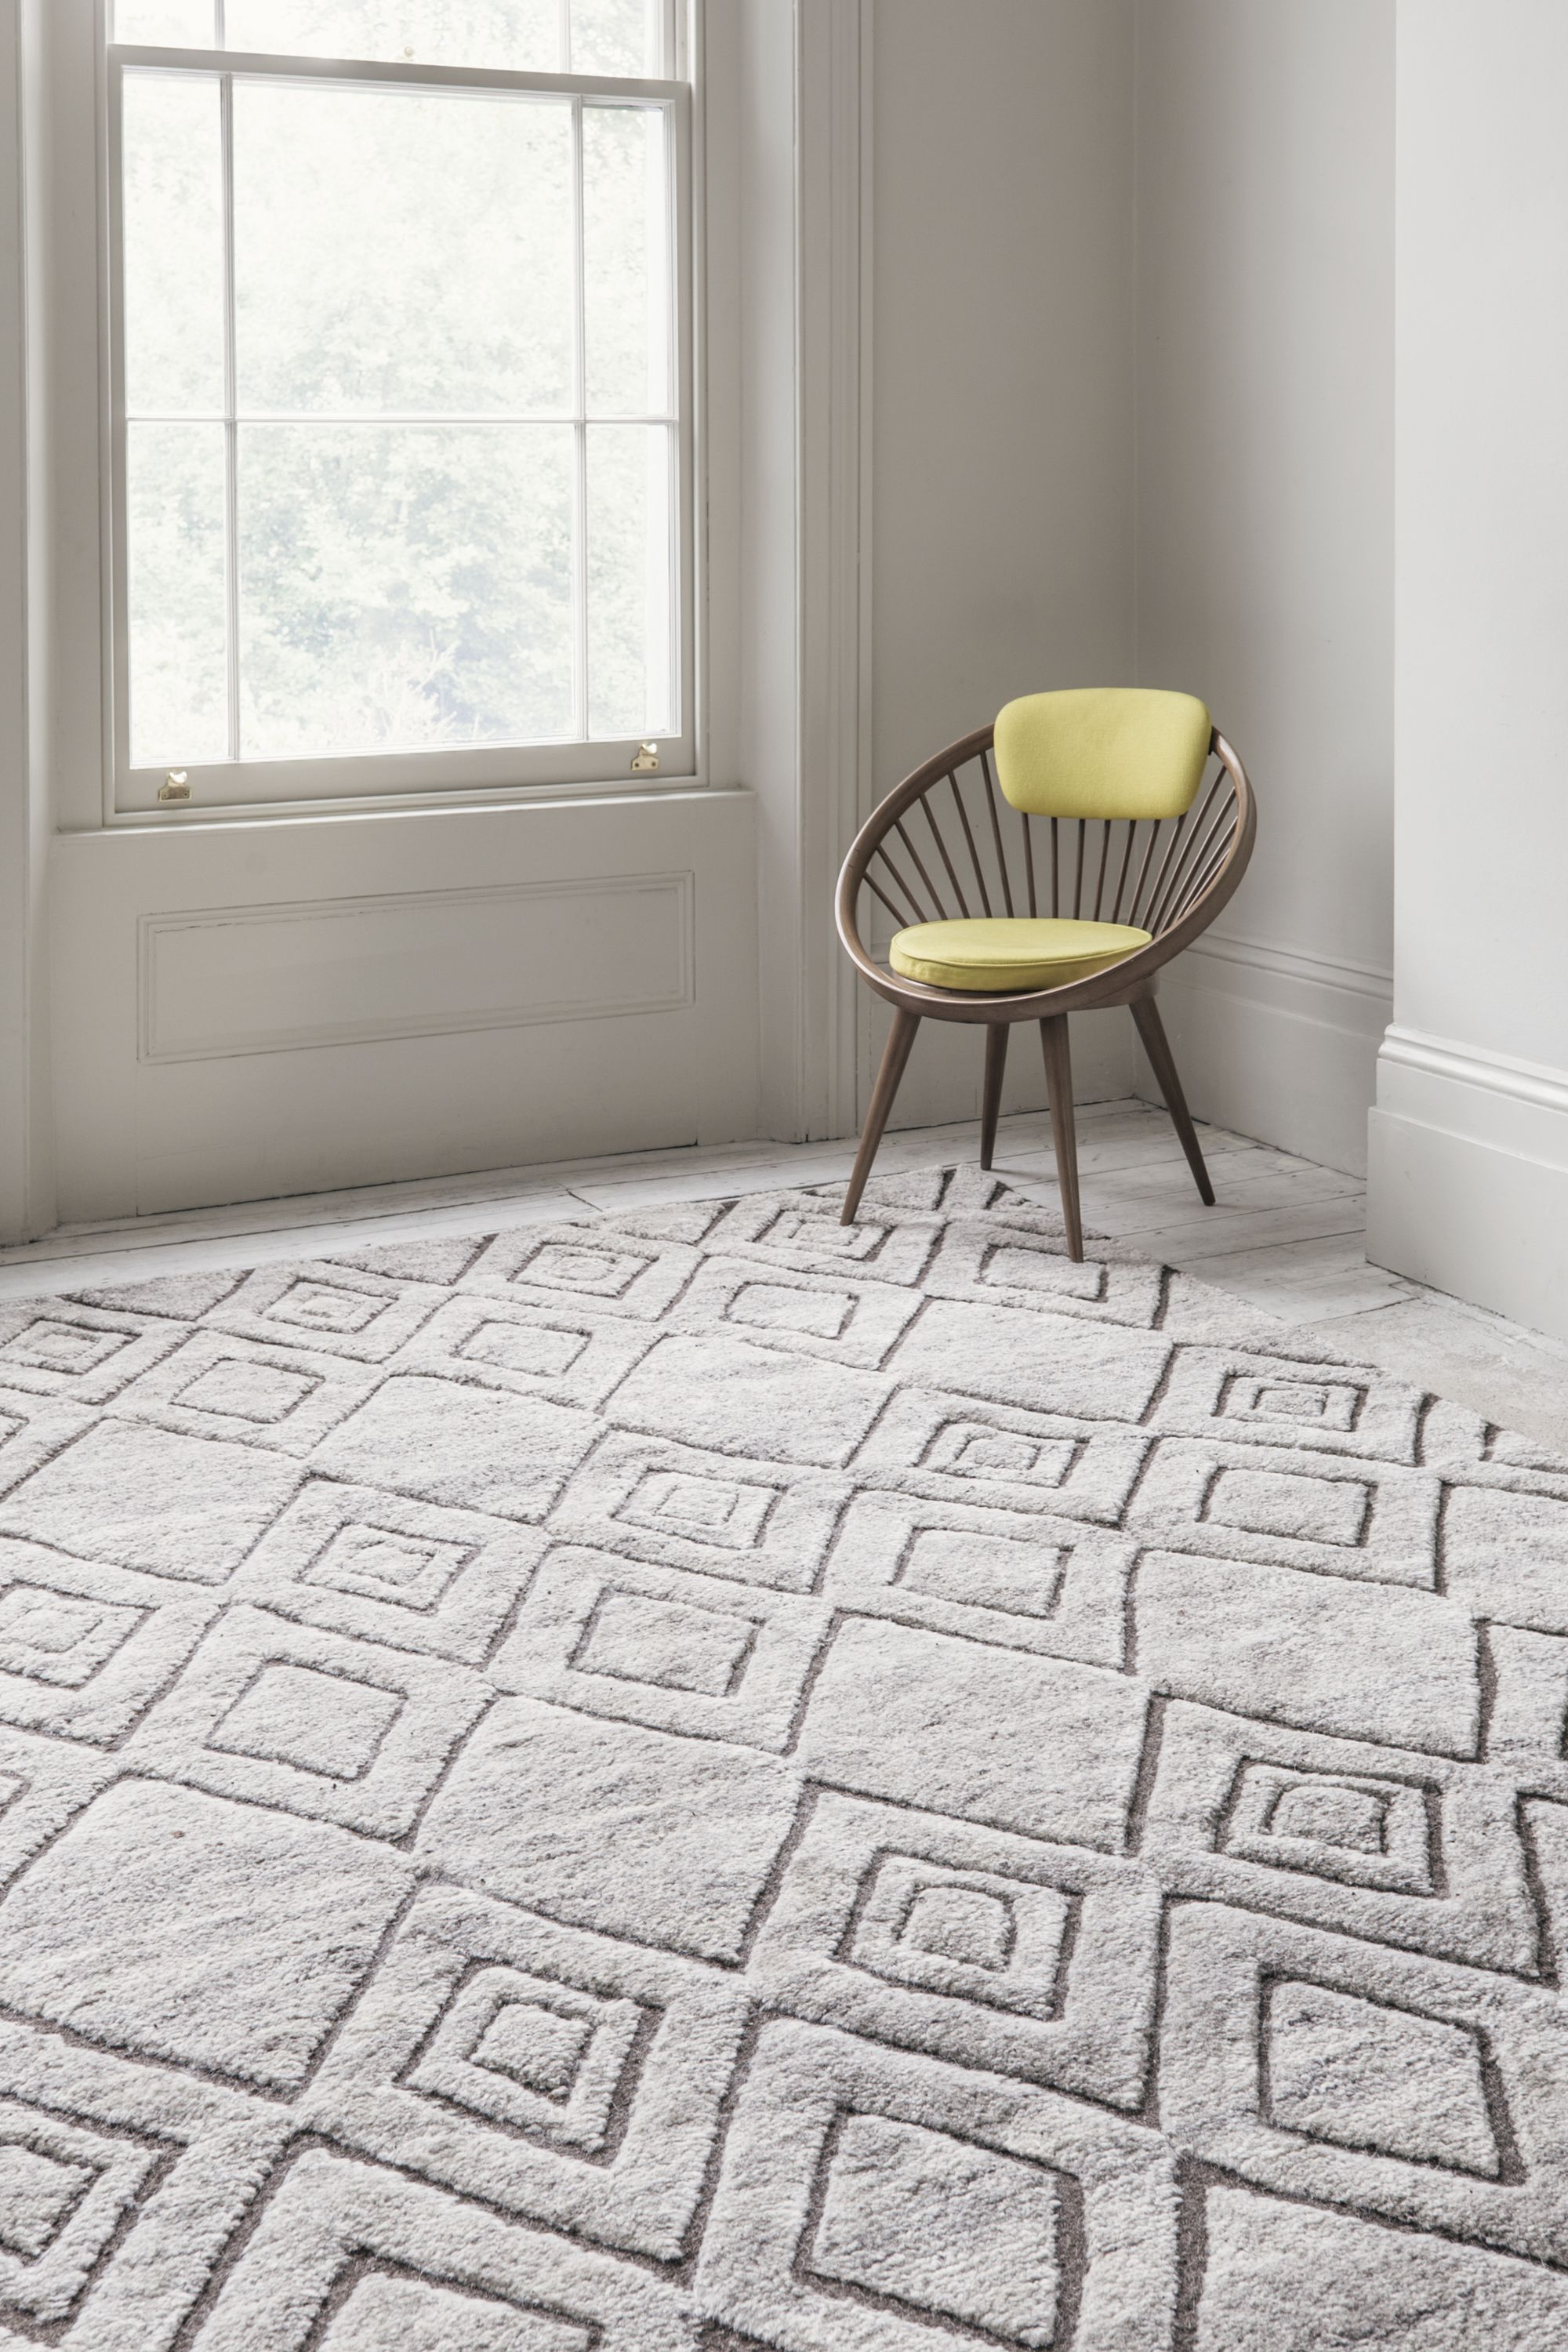 The Natural Slate Berber Knot Gazelle Floor Rug By Armadillo Is Hand Woven Under Fair Trade Conditions In India